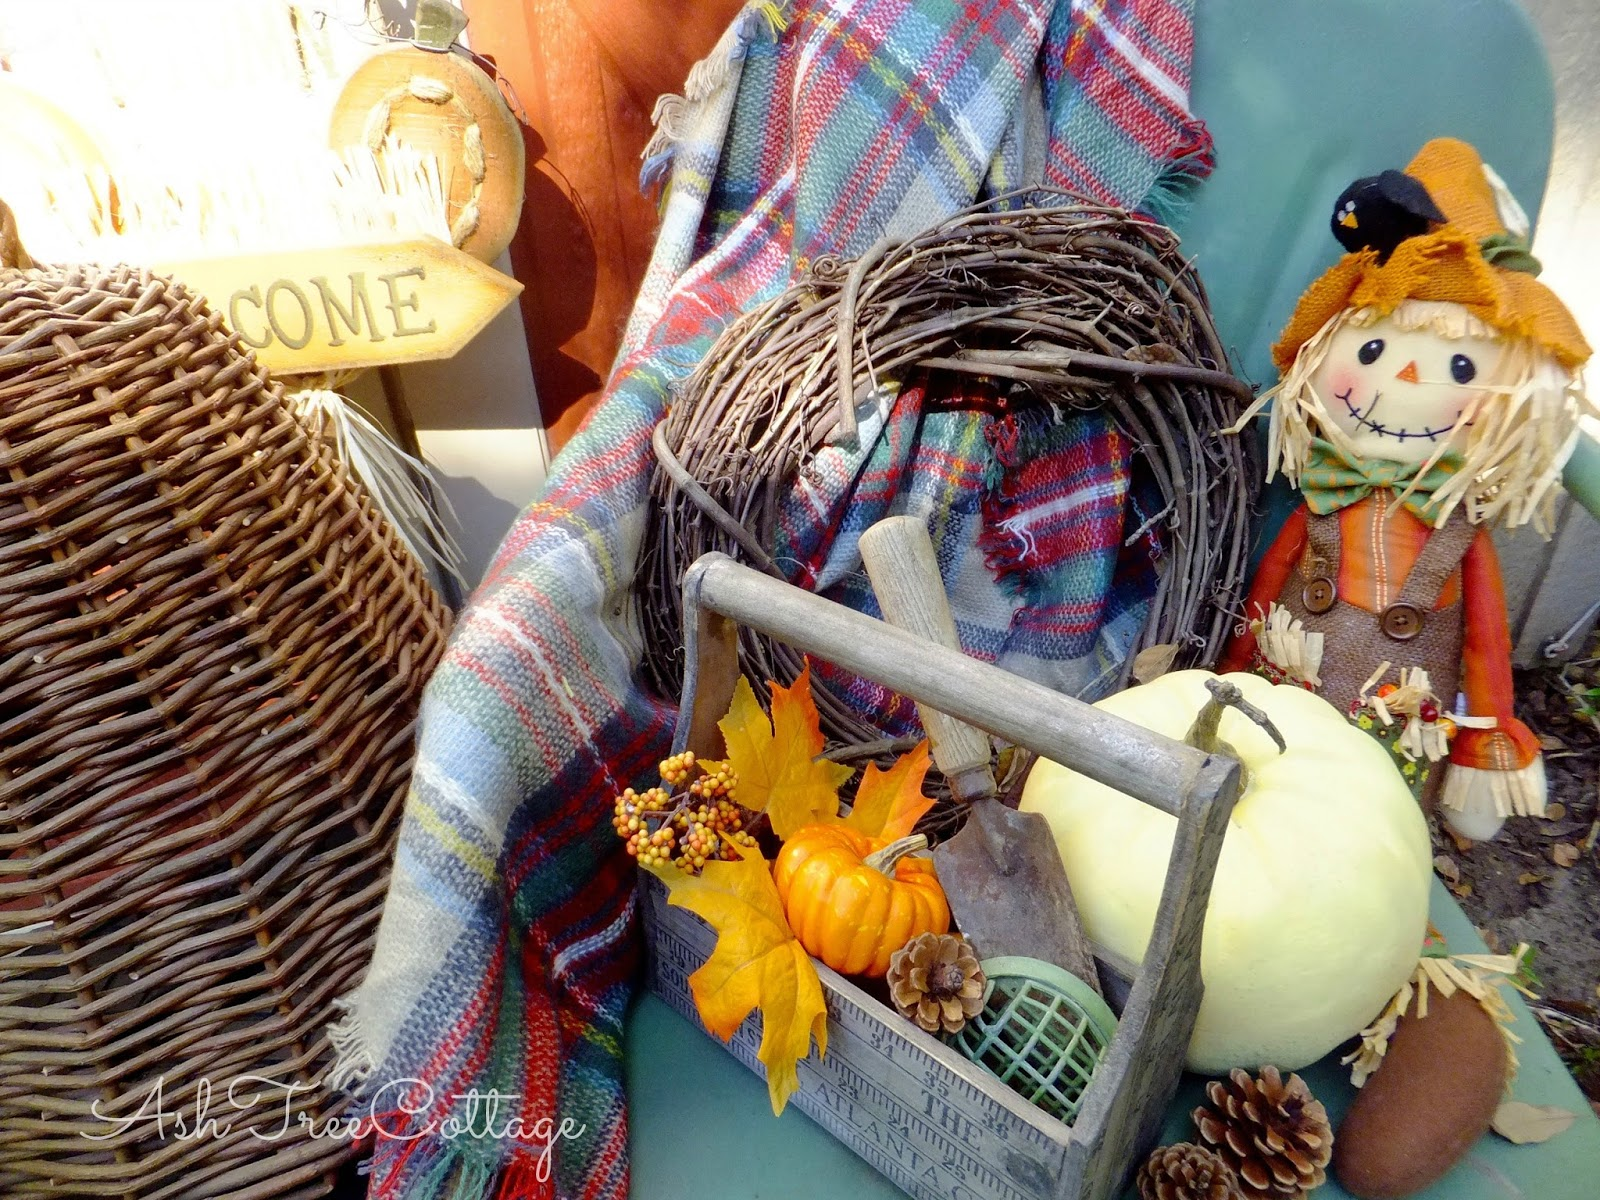 Ash tree cottage get ready for fall home tours for Getting ready for fall